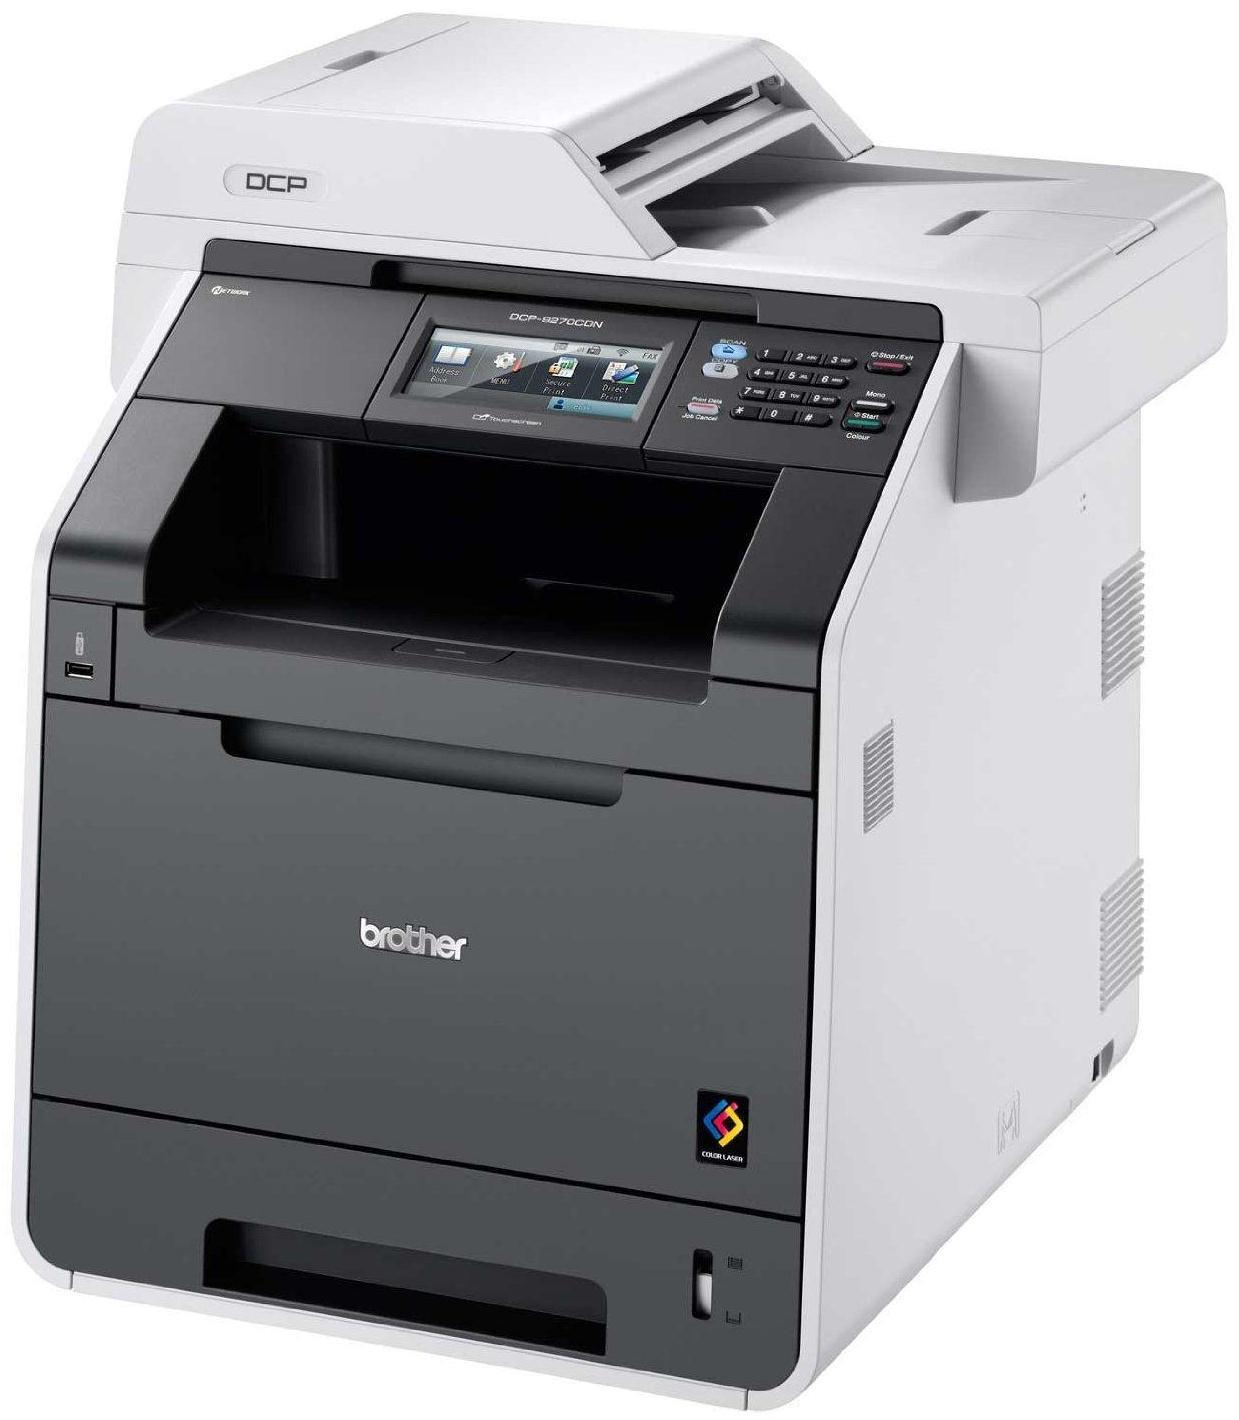 Brother DCP-9270CDN A4 Multifunction Network Ready Colour Laser Printer